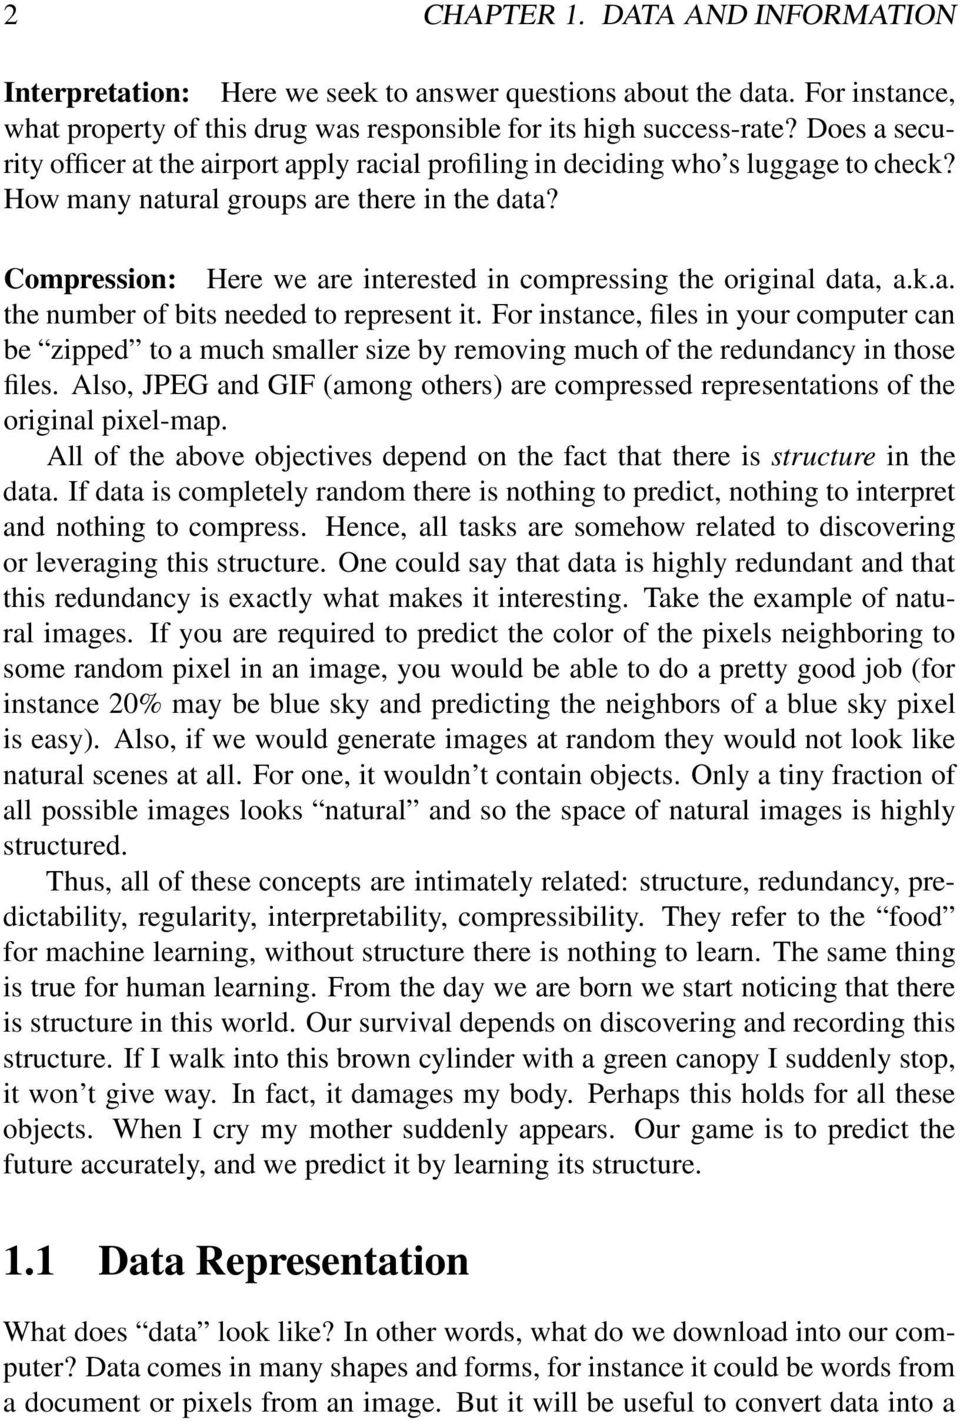 Compression: Here we are interested in compressing the original data, a.k.a. the number of bits needed to represent it.